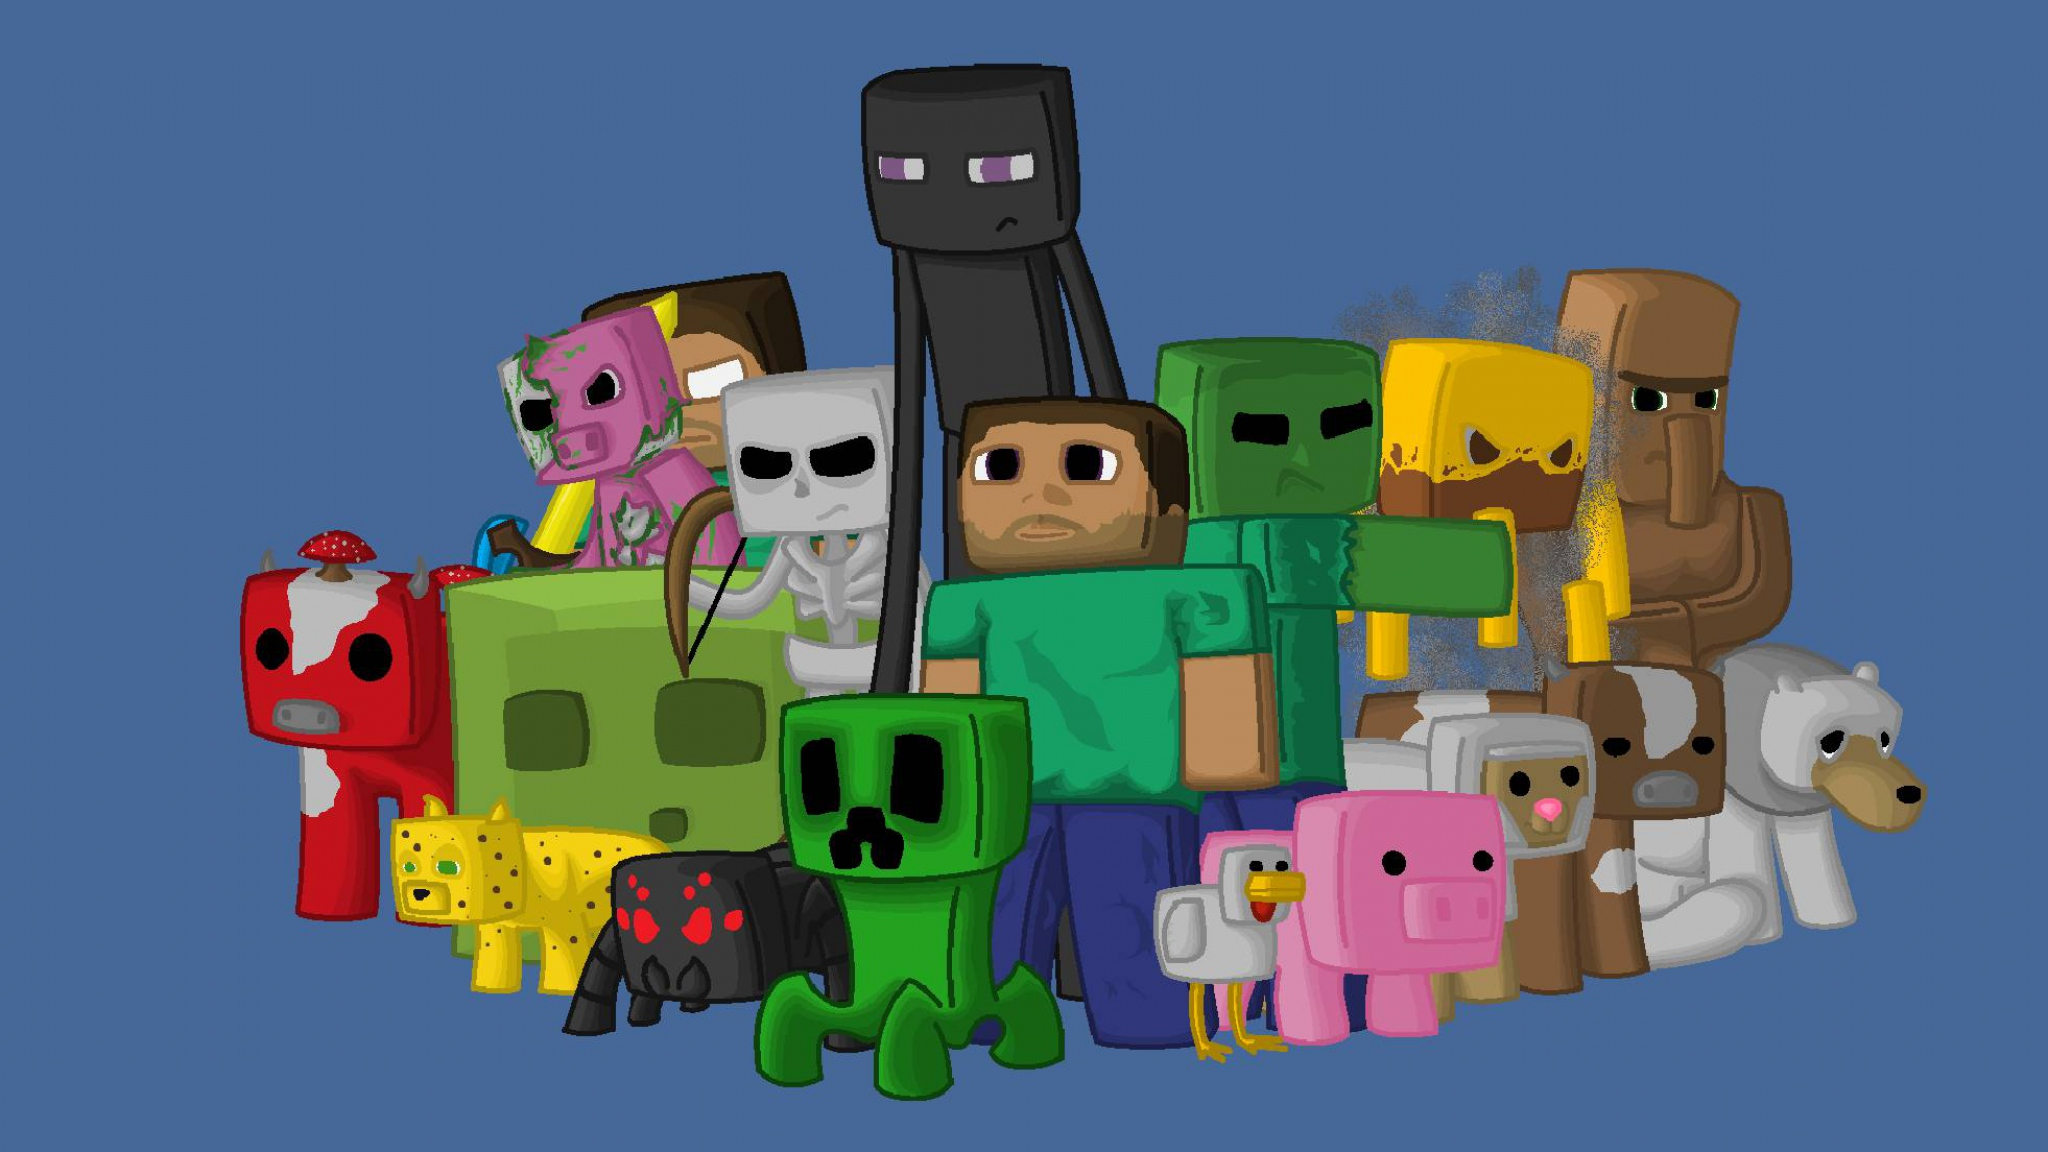 Wallpaper 2048x1152 Minecraft Characters Game Pixels Java HD HD 2048x1152